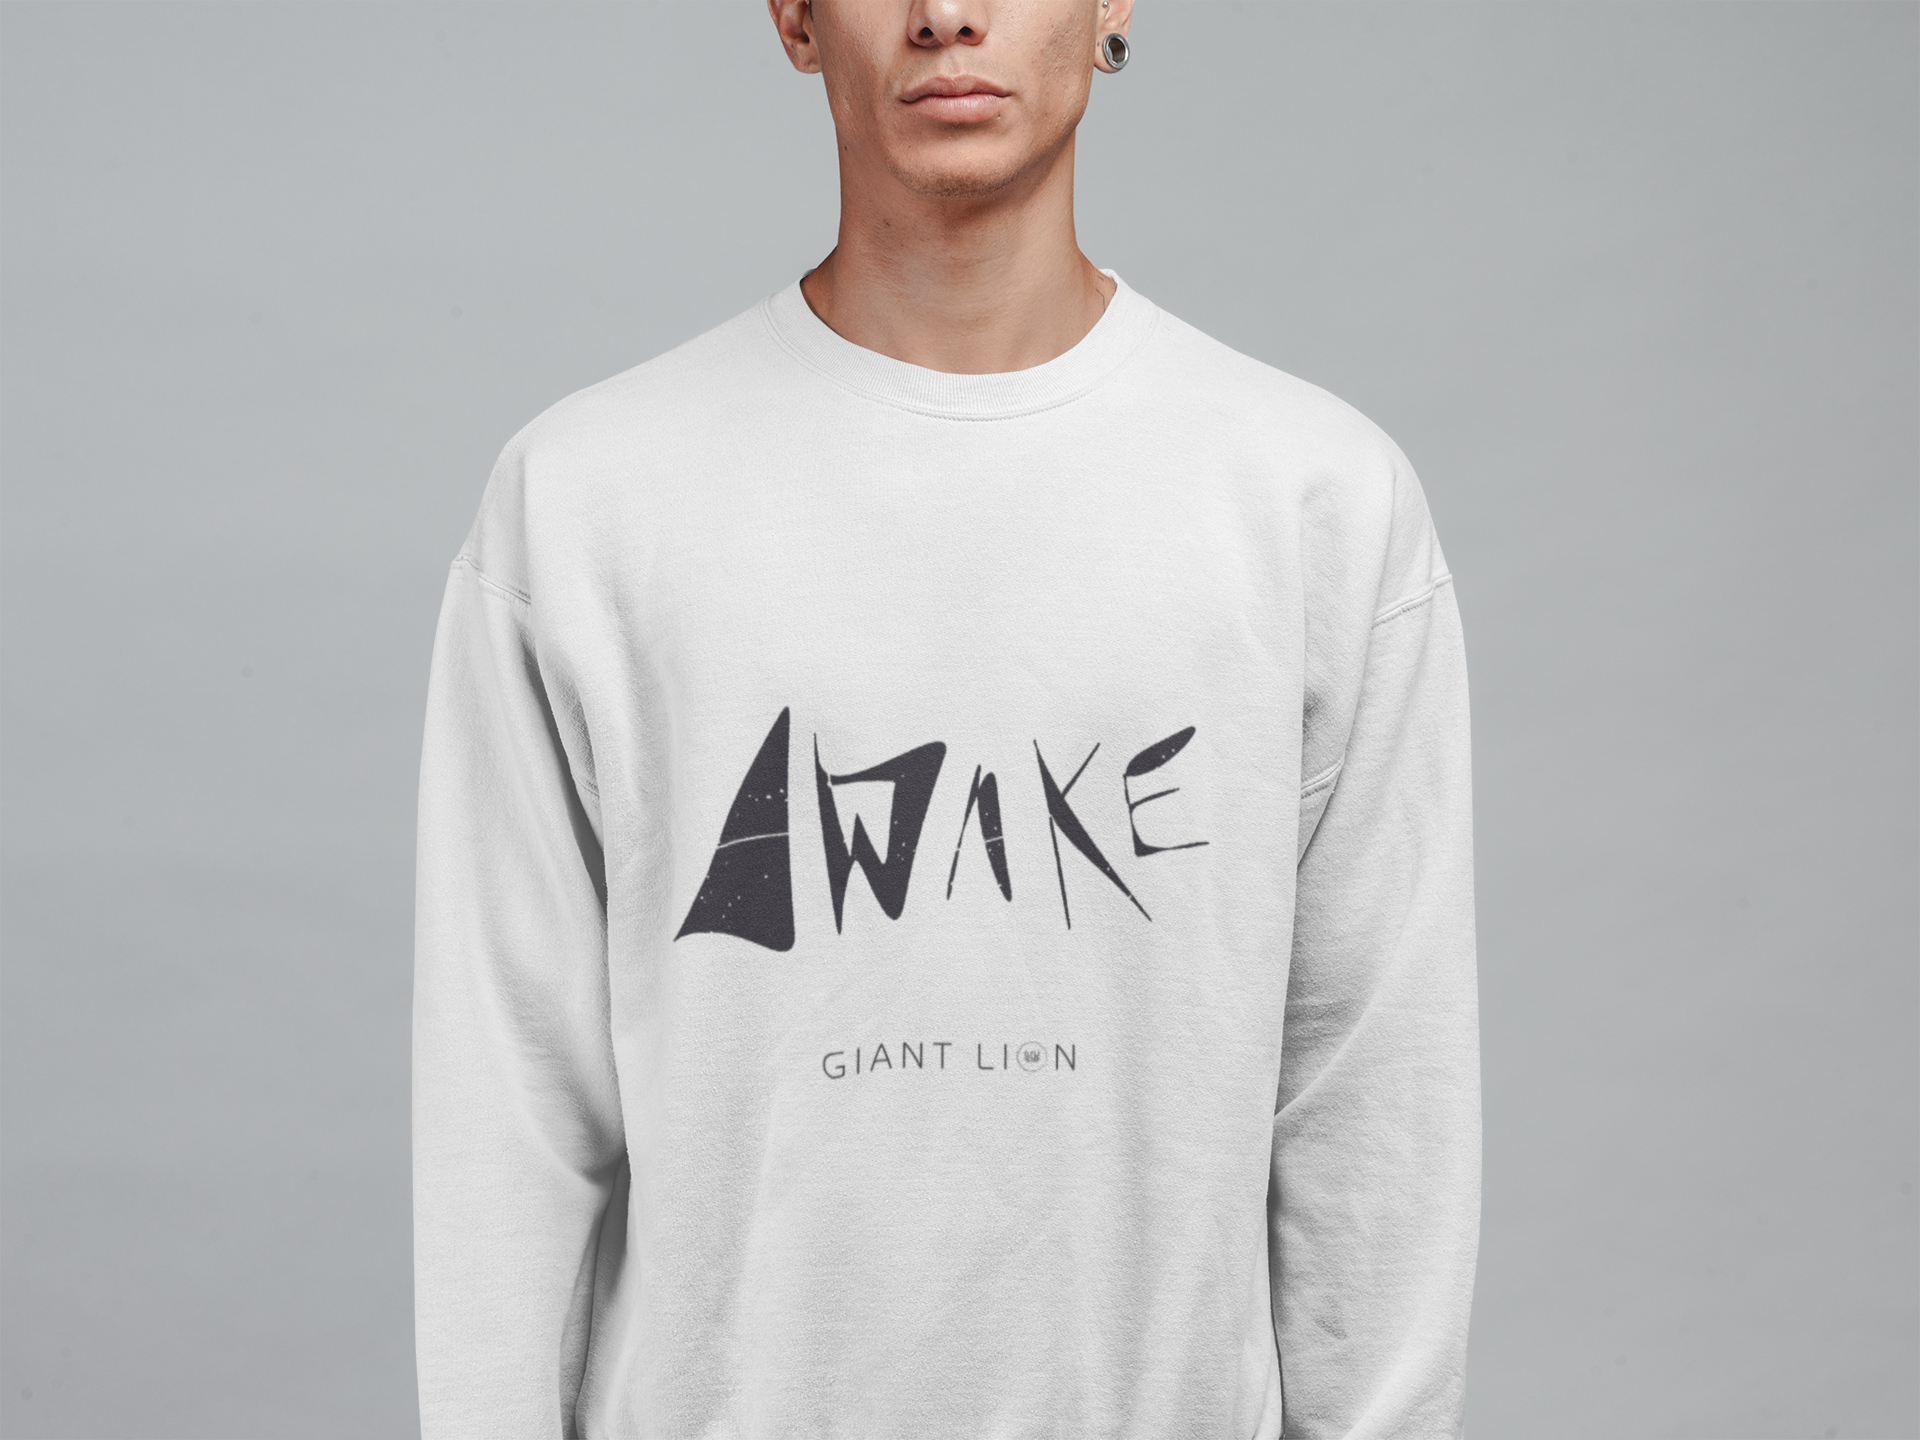 Awake Band Crewneck